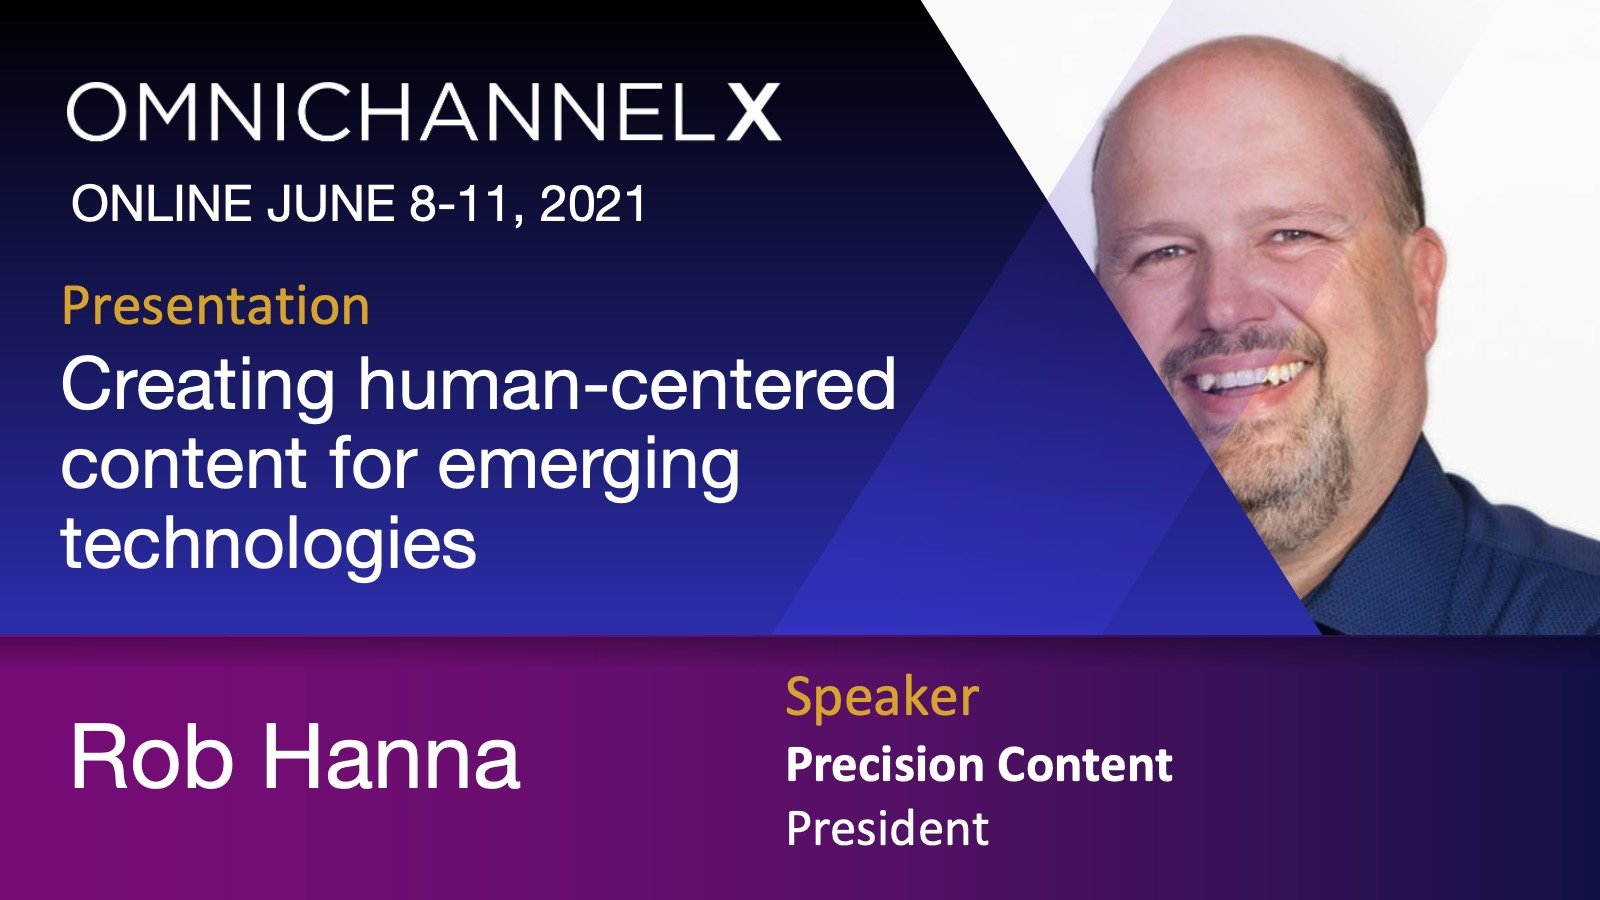 Rob Hanna. OmnichannelX. Online June 8-11, 2021. Presentation: Creating human-centered content for emerging technologies.